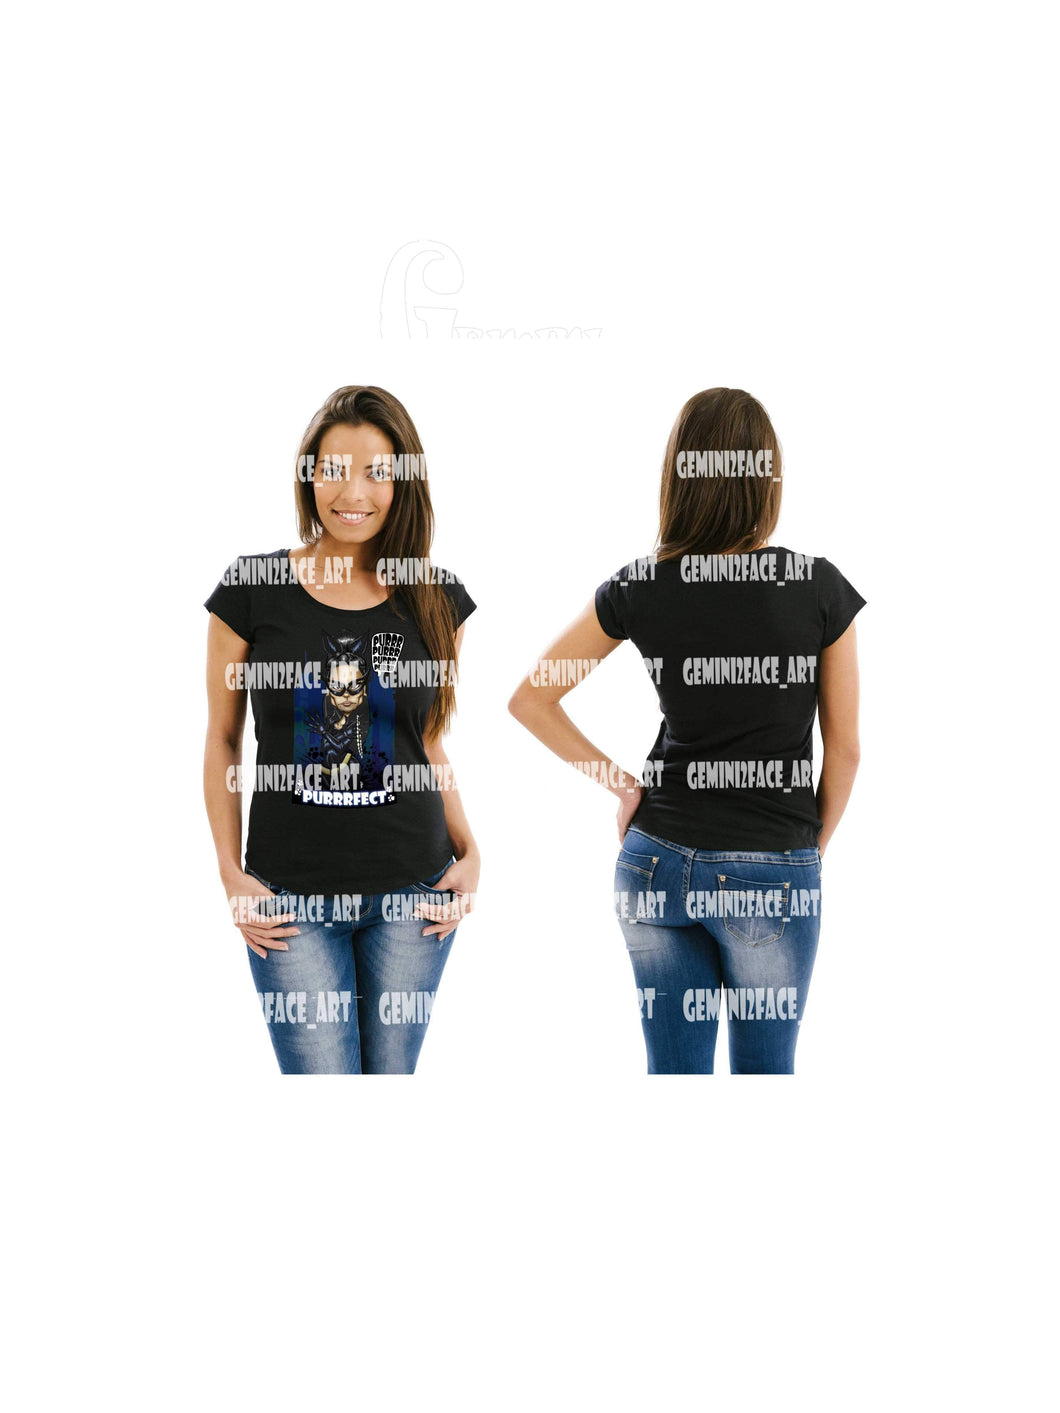 Catwoman Short Sleeve (DTG) Shirt Gemini2face Art E-Store